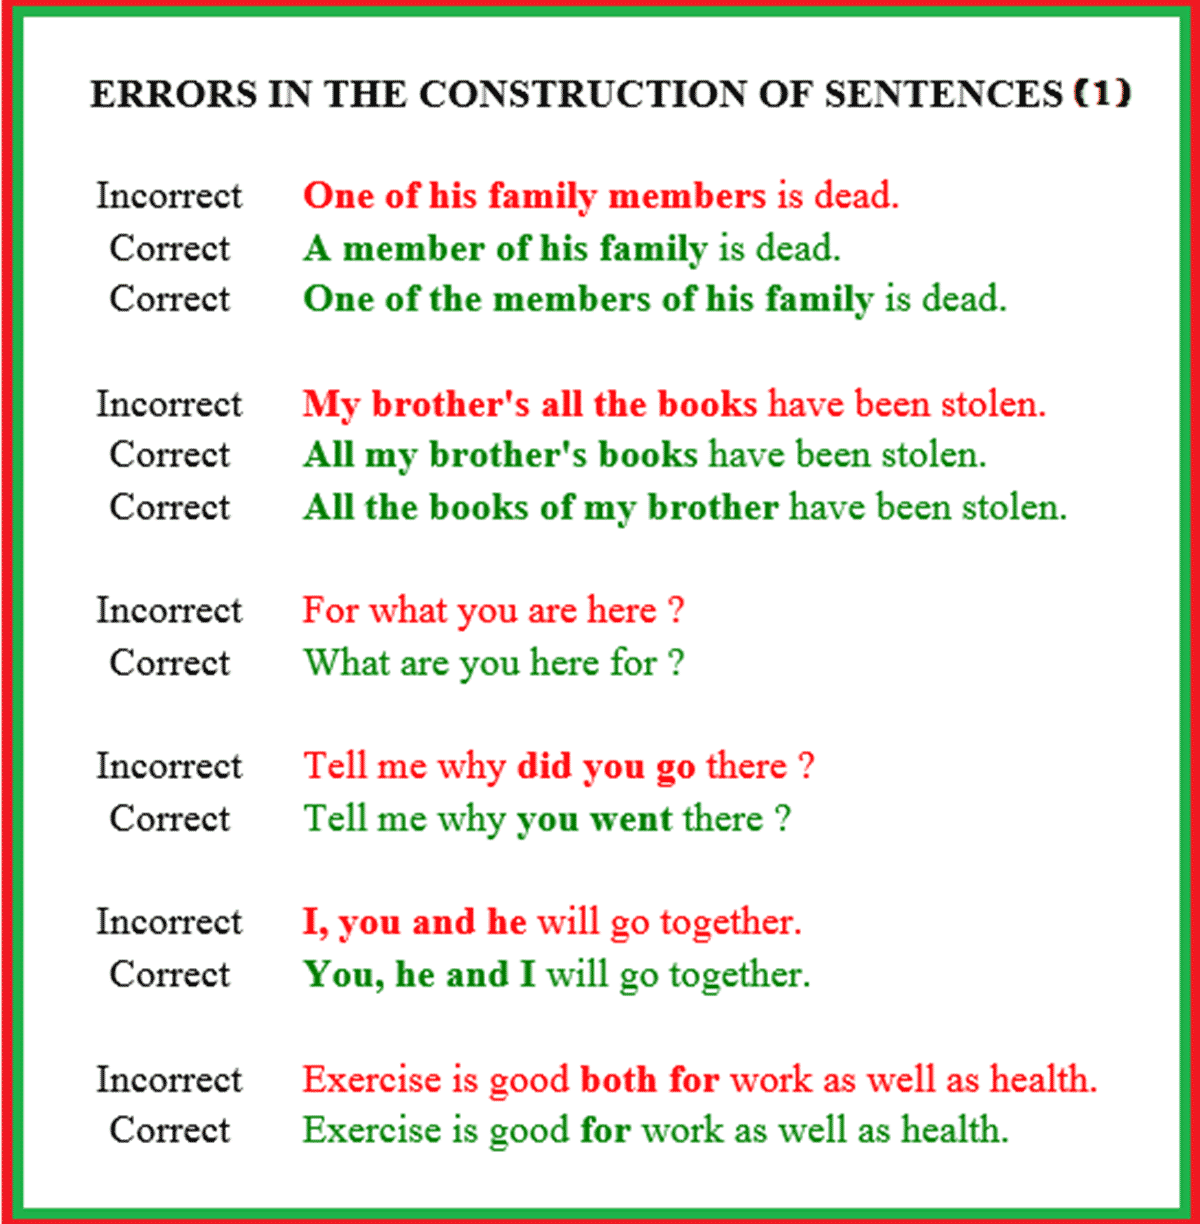 Mistakes in the Construction of Sentences